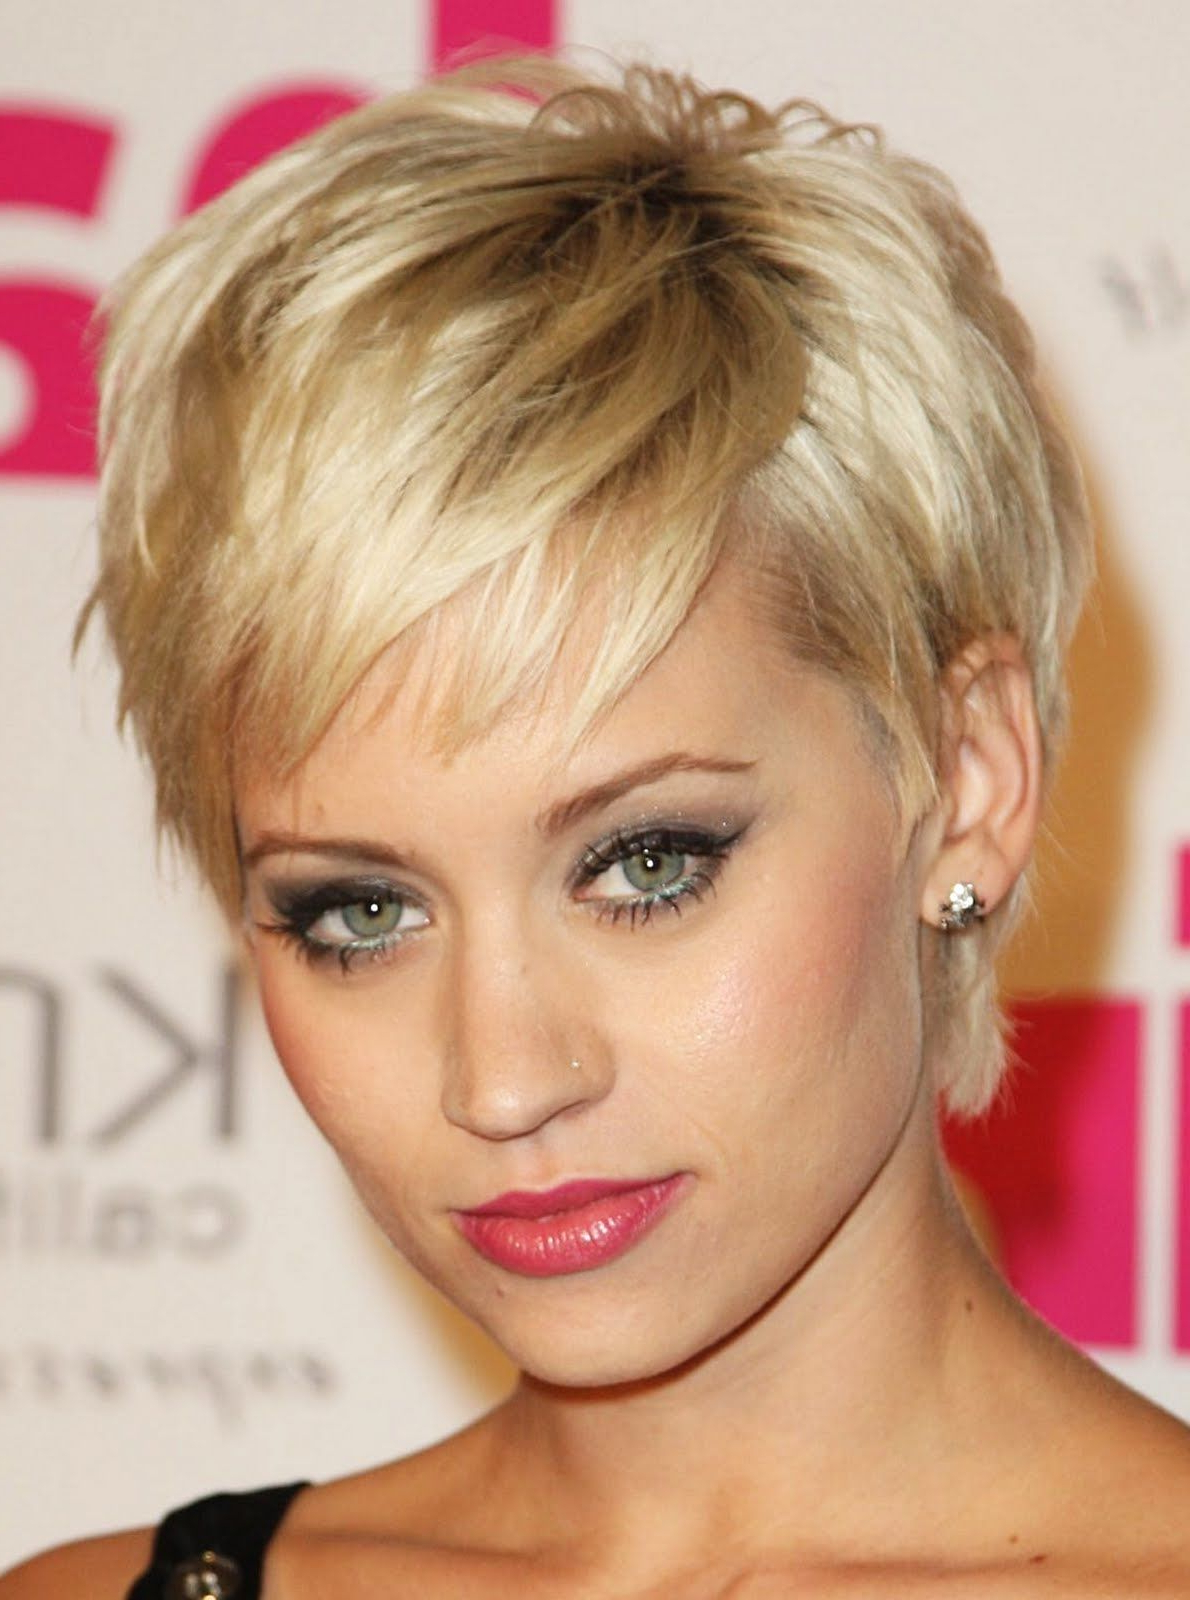 Short Hairstyles For Oval Faces (View 12 of 20)